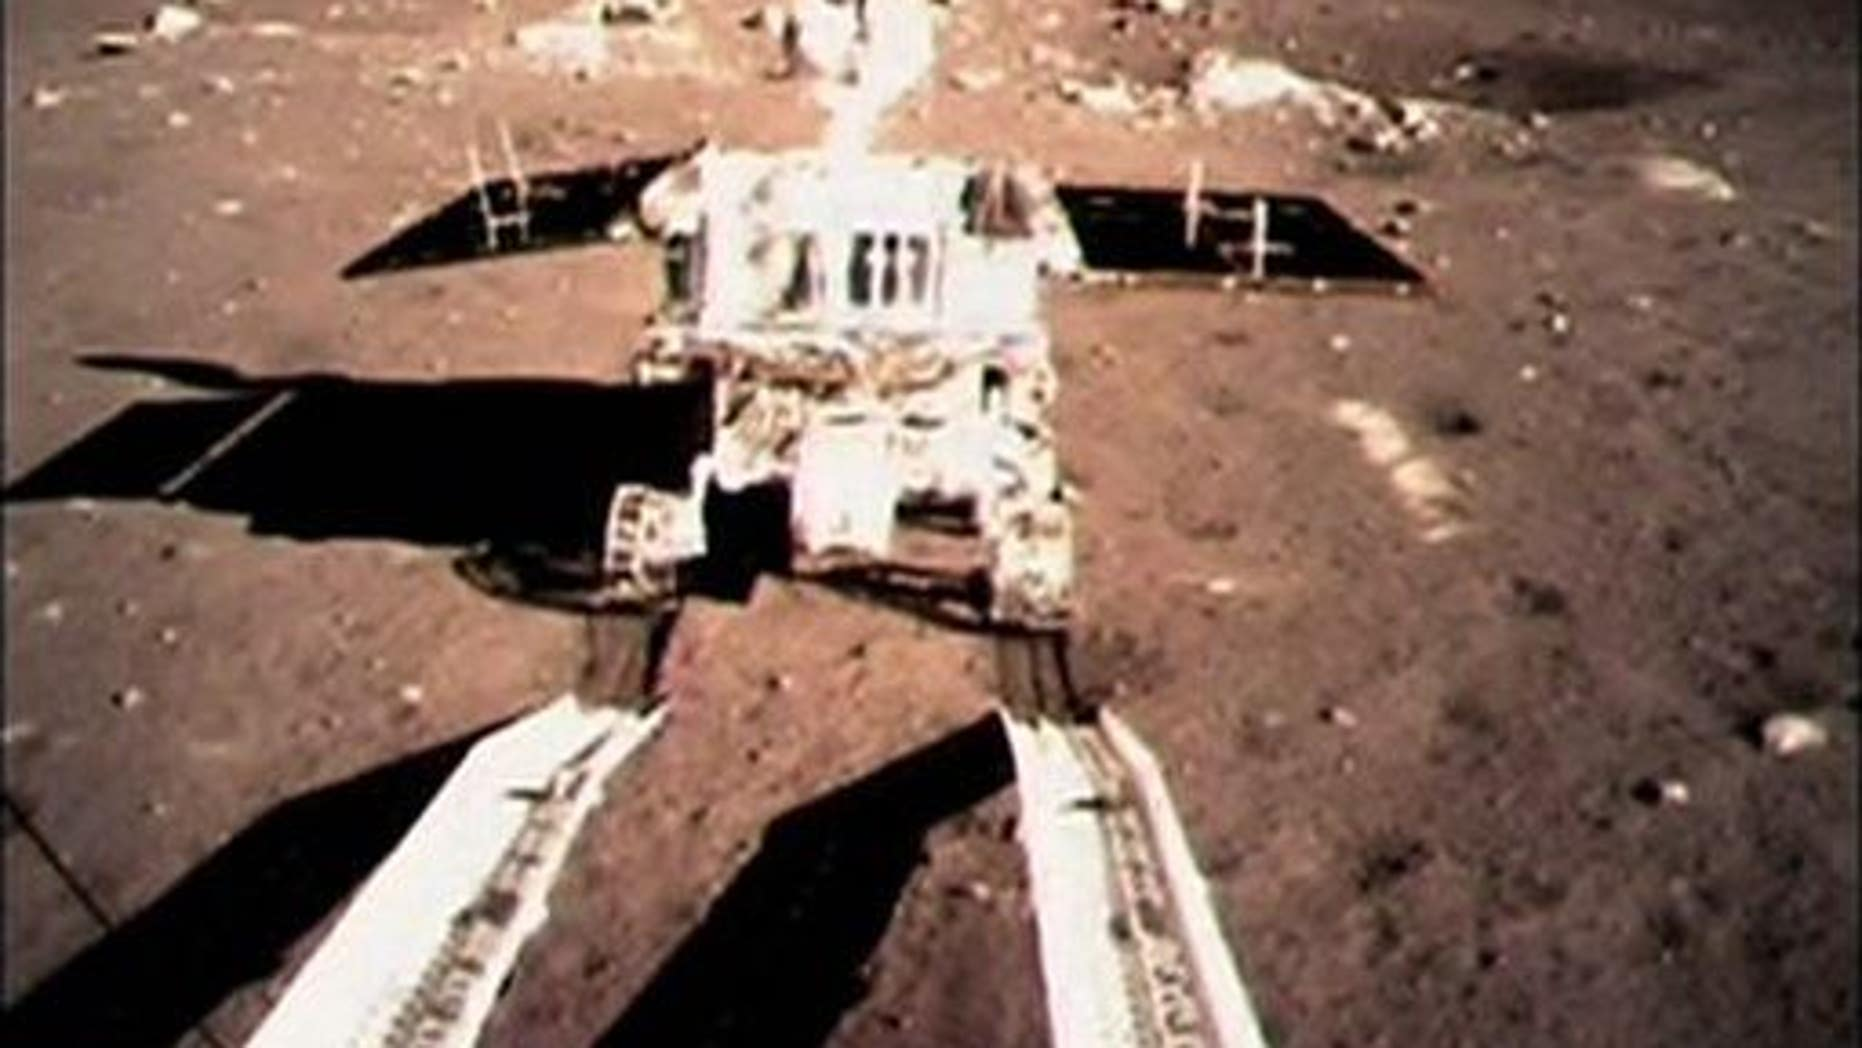 China's Jade Rabbit touches the lunar surface in this Dec. 15, 2013, file photo.